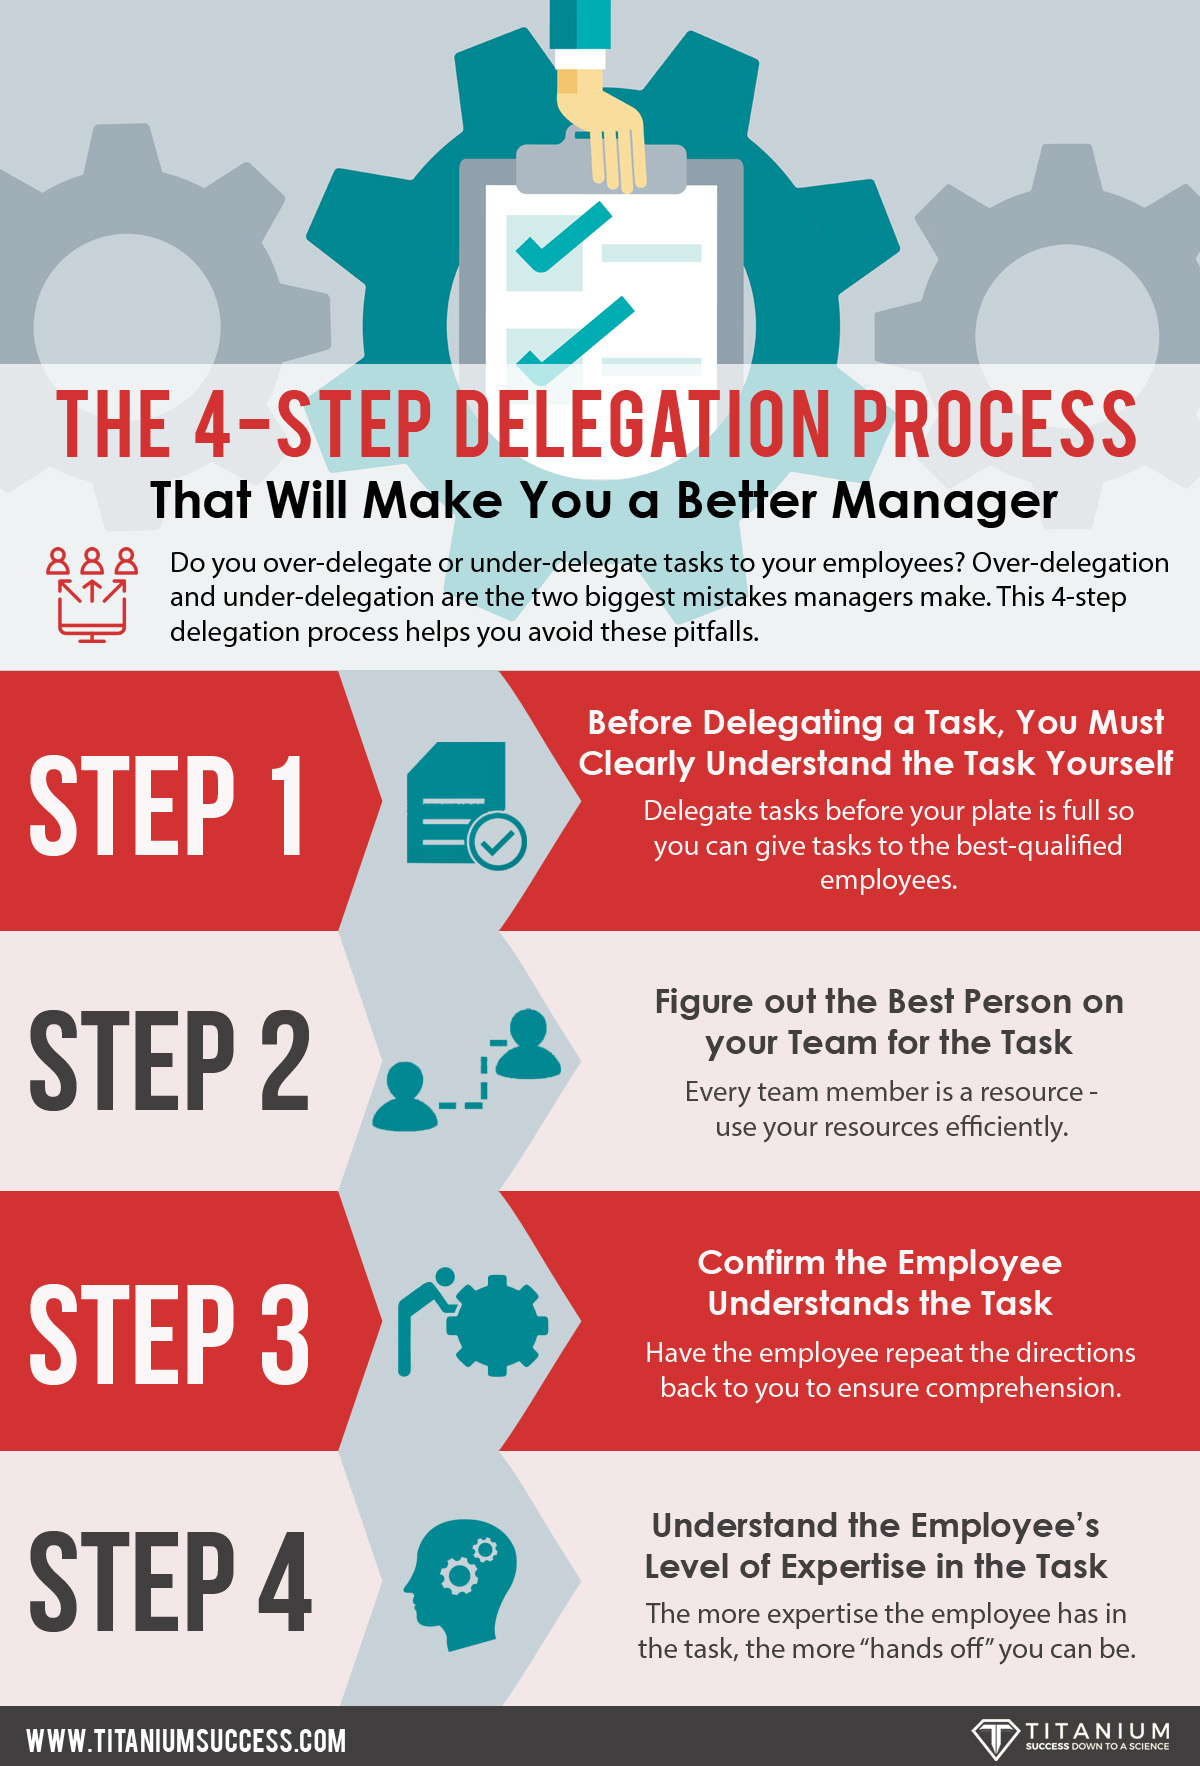 The 4-Step Delegation Process Infographic - TS